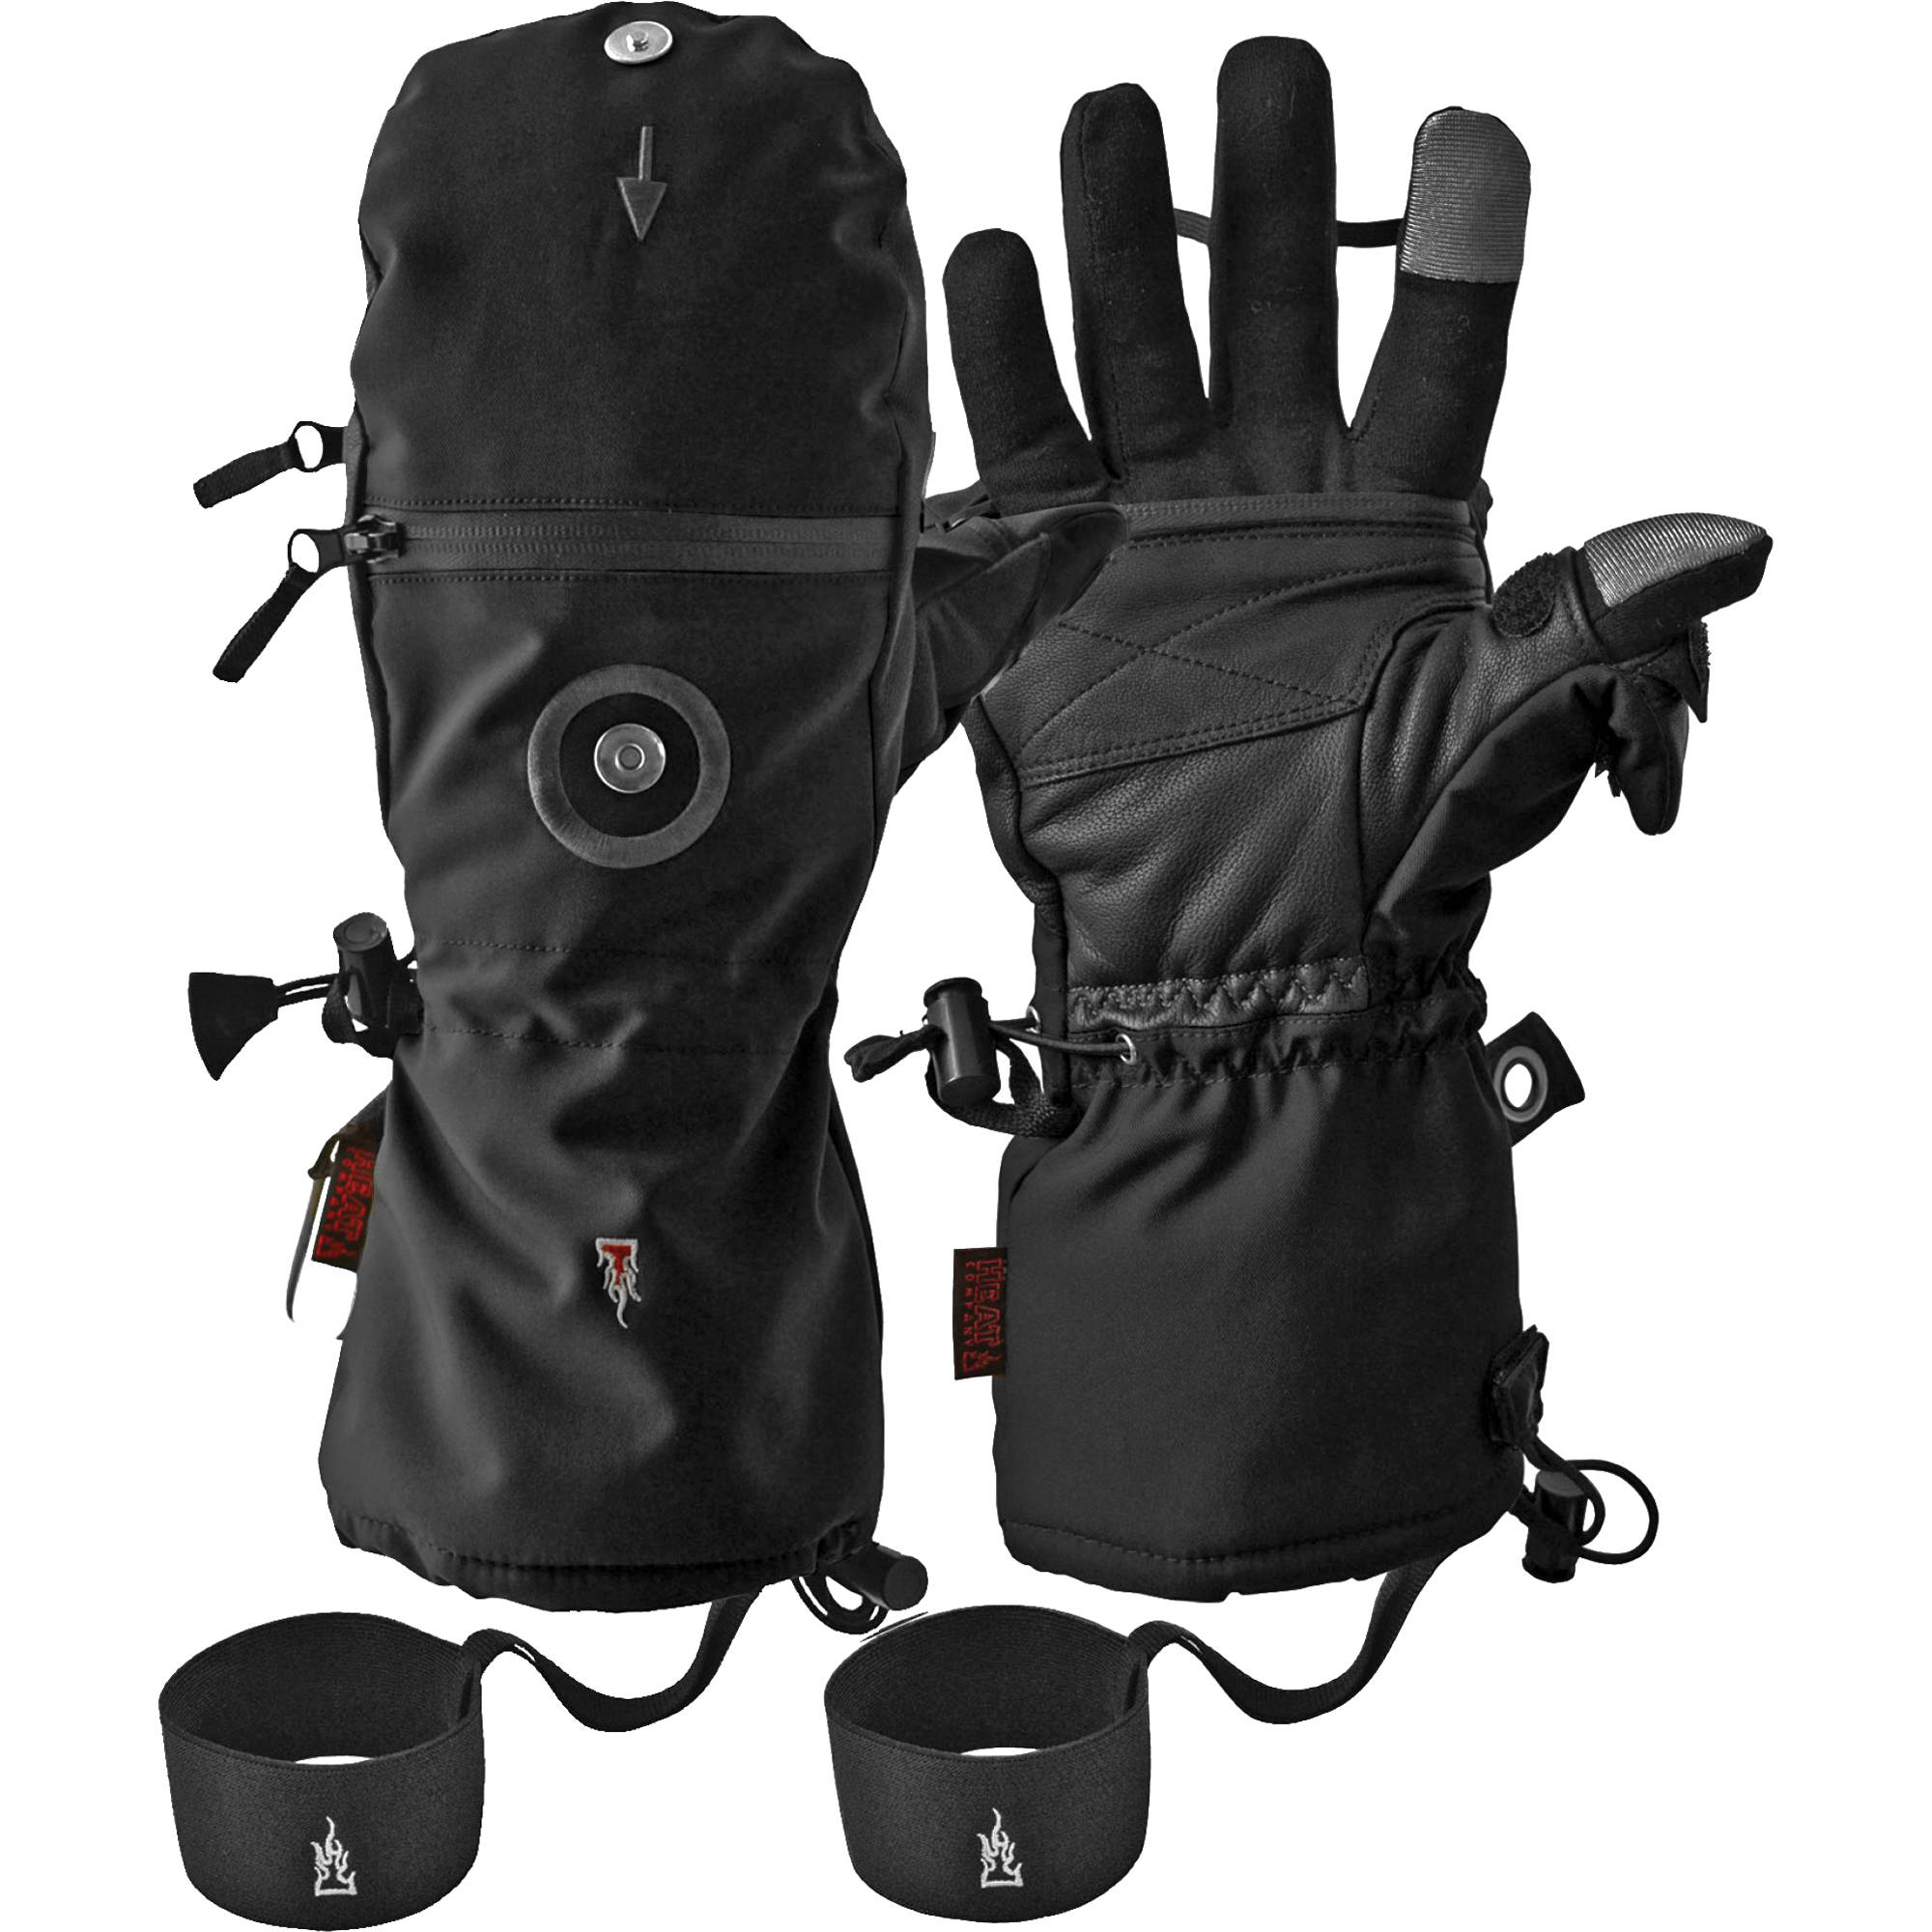 Mens gloves extra large - The Heat Company Heat 3 Smart Cold Weather Touchscreen Gloves Men S Extra Large Black